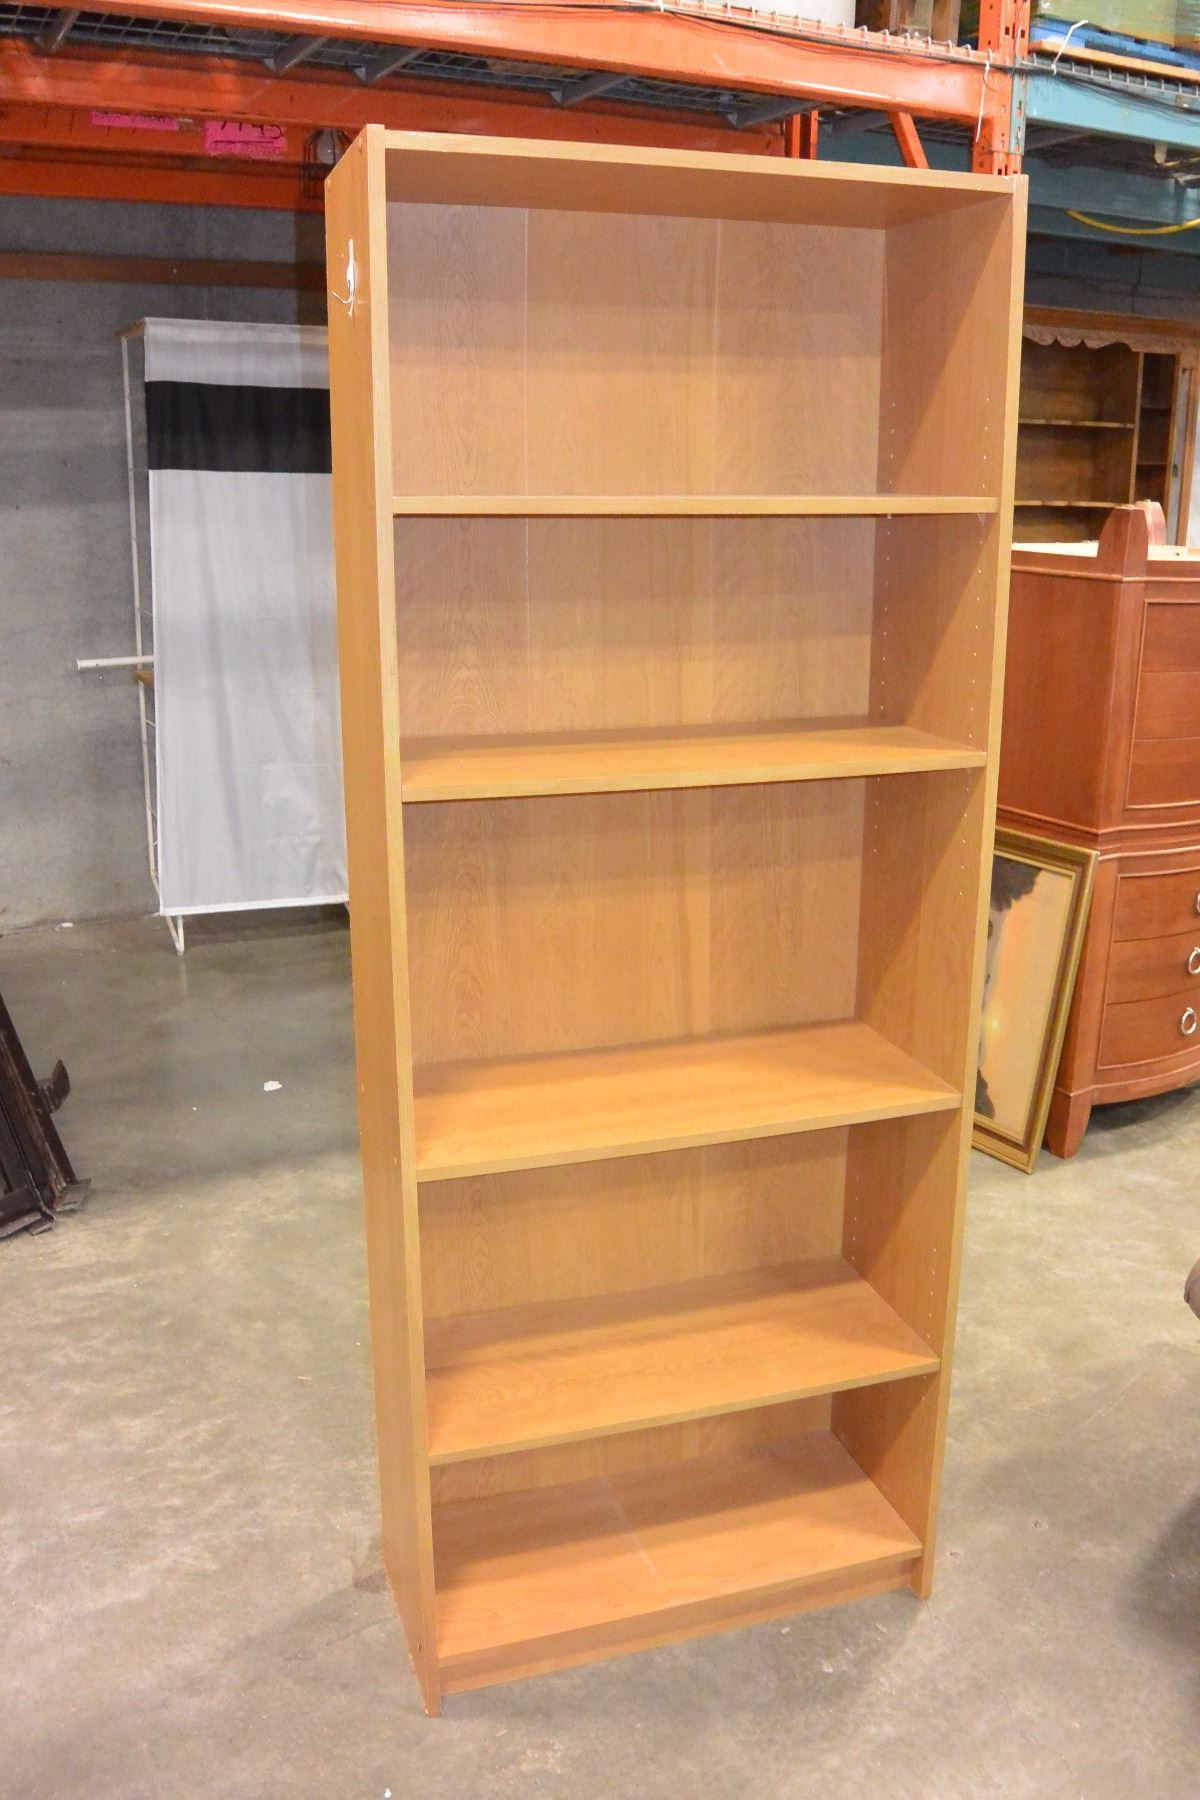 Image 1 6 FOOT MAPLE BOOKSHELF